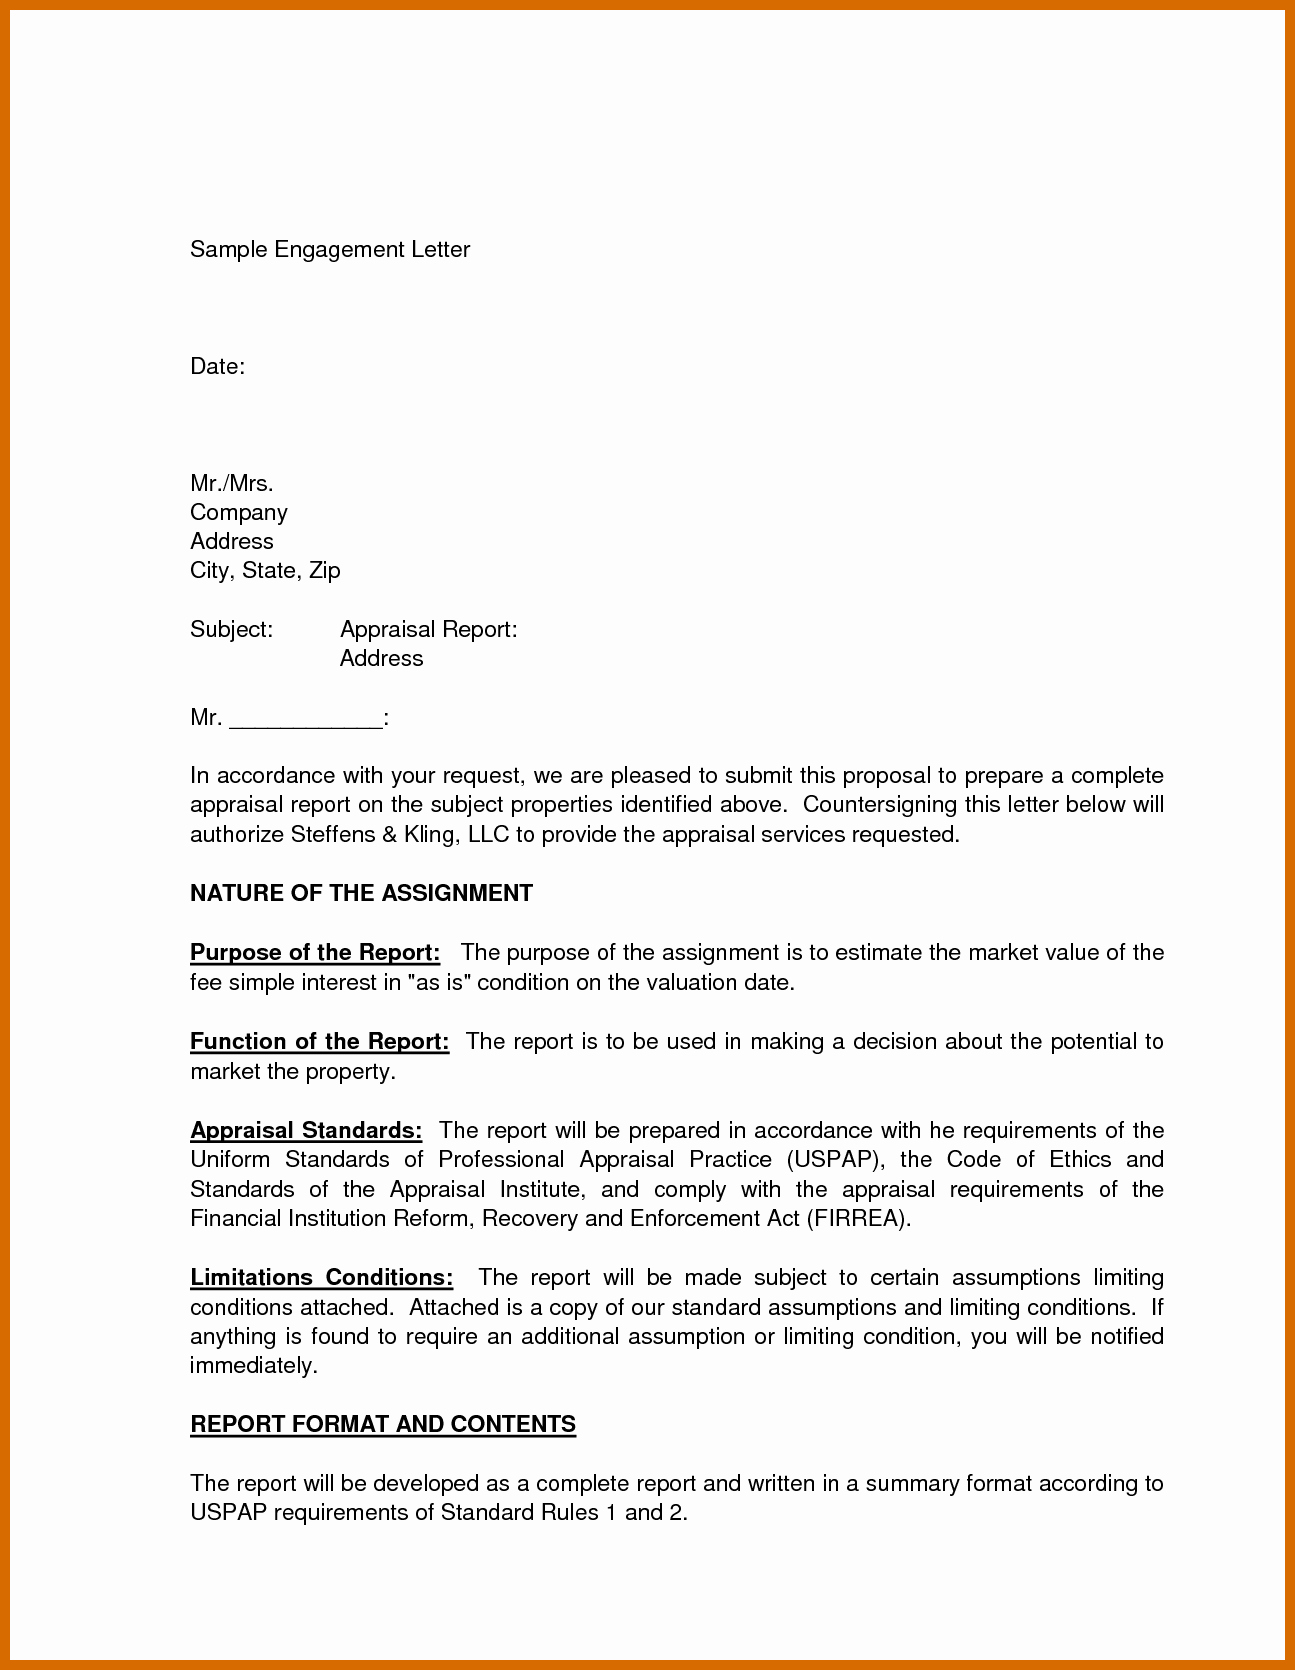 Bookkeeper Contract Engagement Letters Fresh 11 12 Sample Engagement Letter